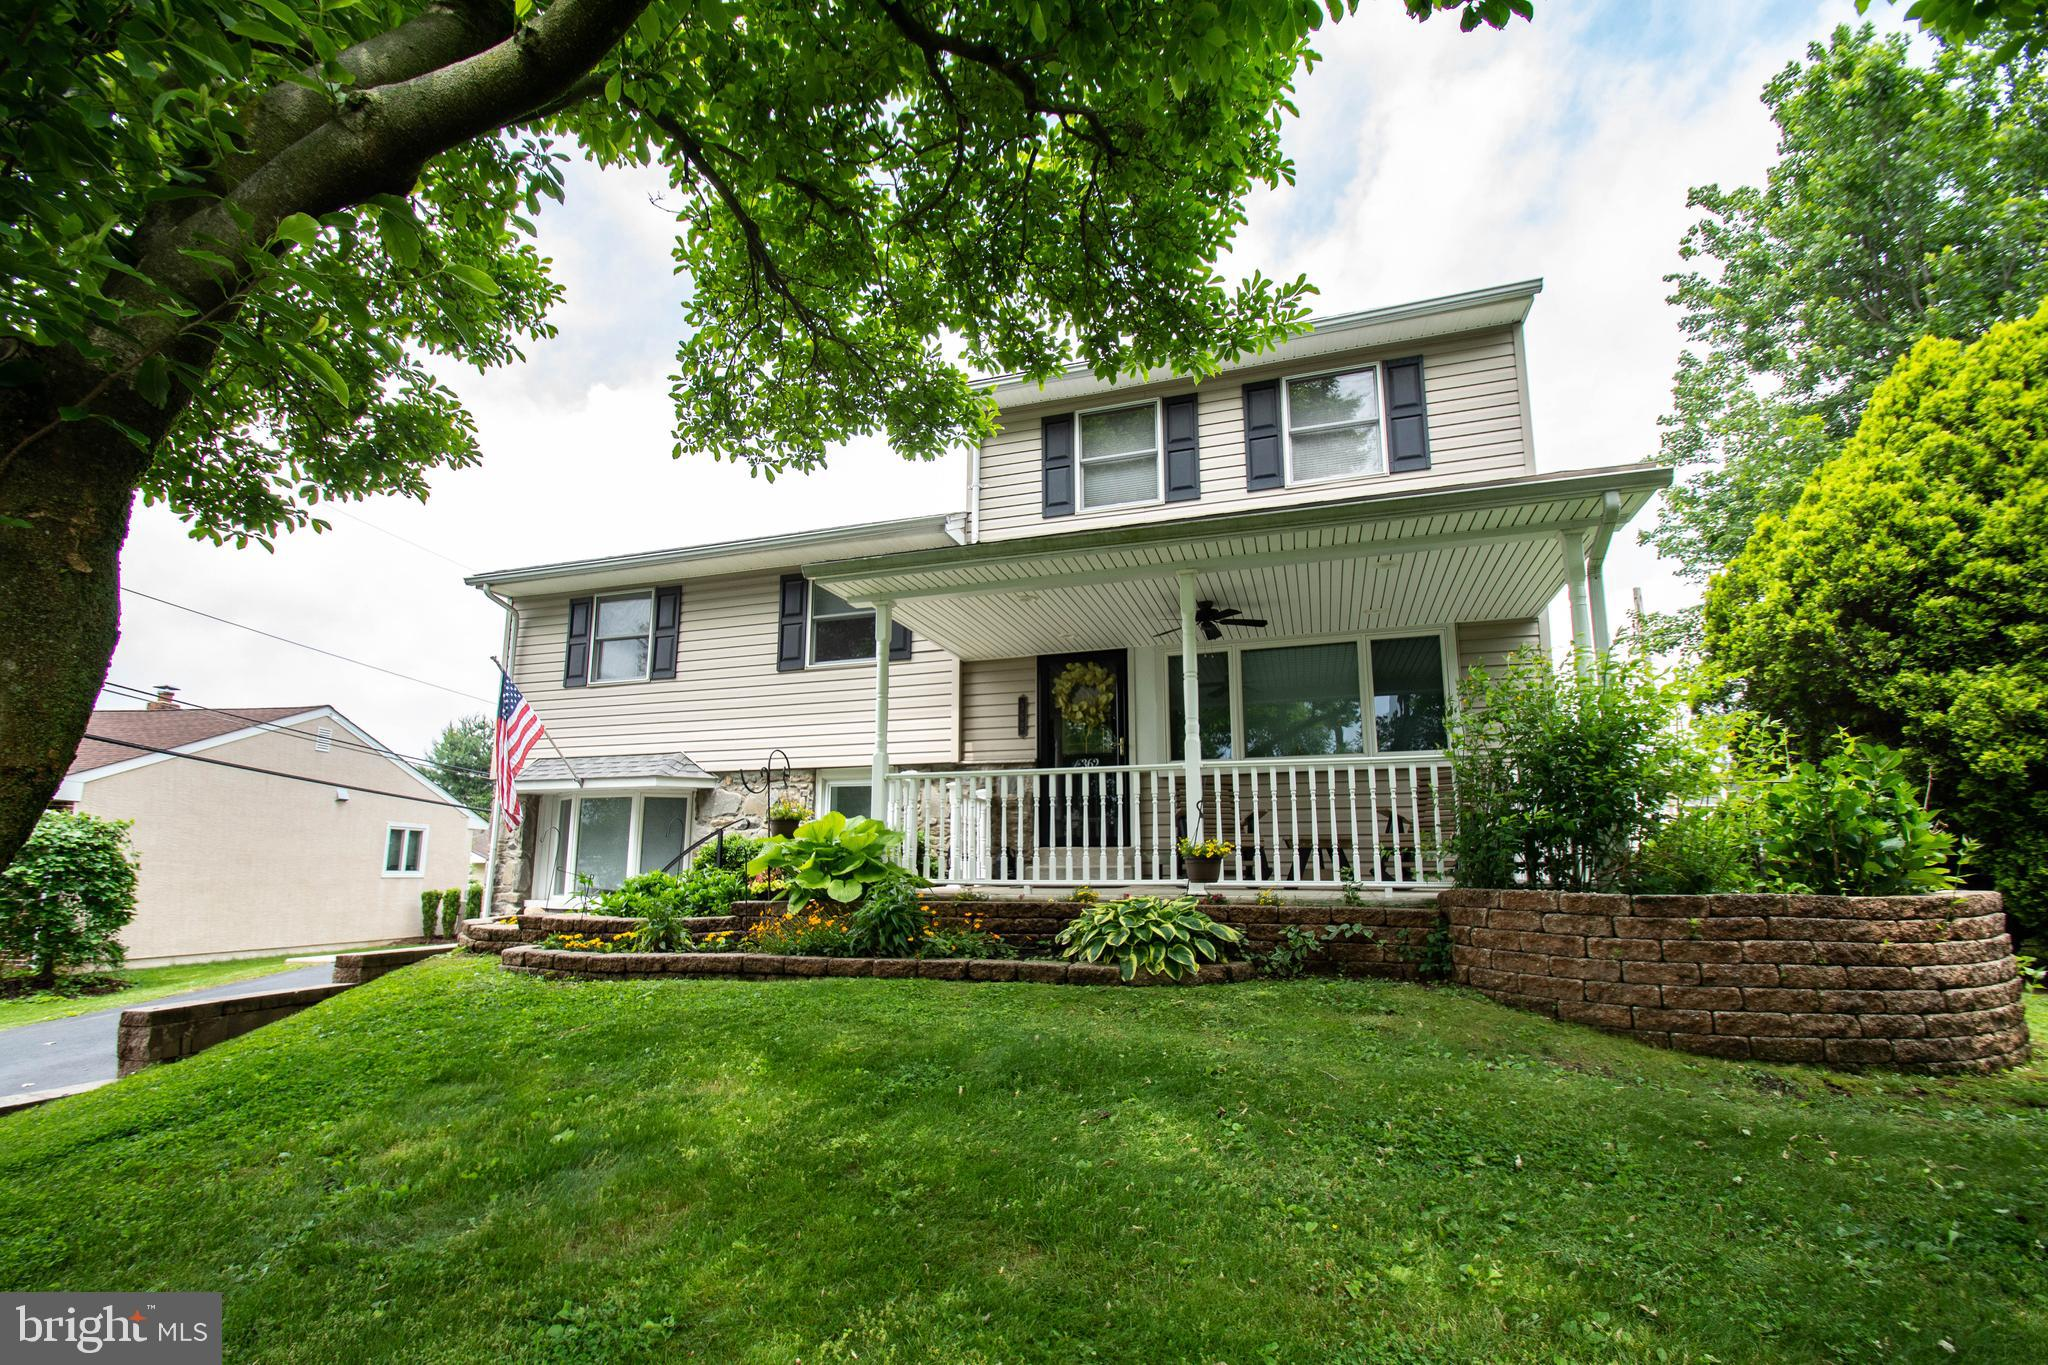 362 WESTBOURNE DRIVE, BROOMALL, PA 19008